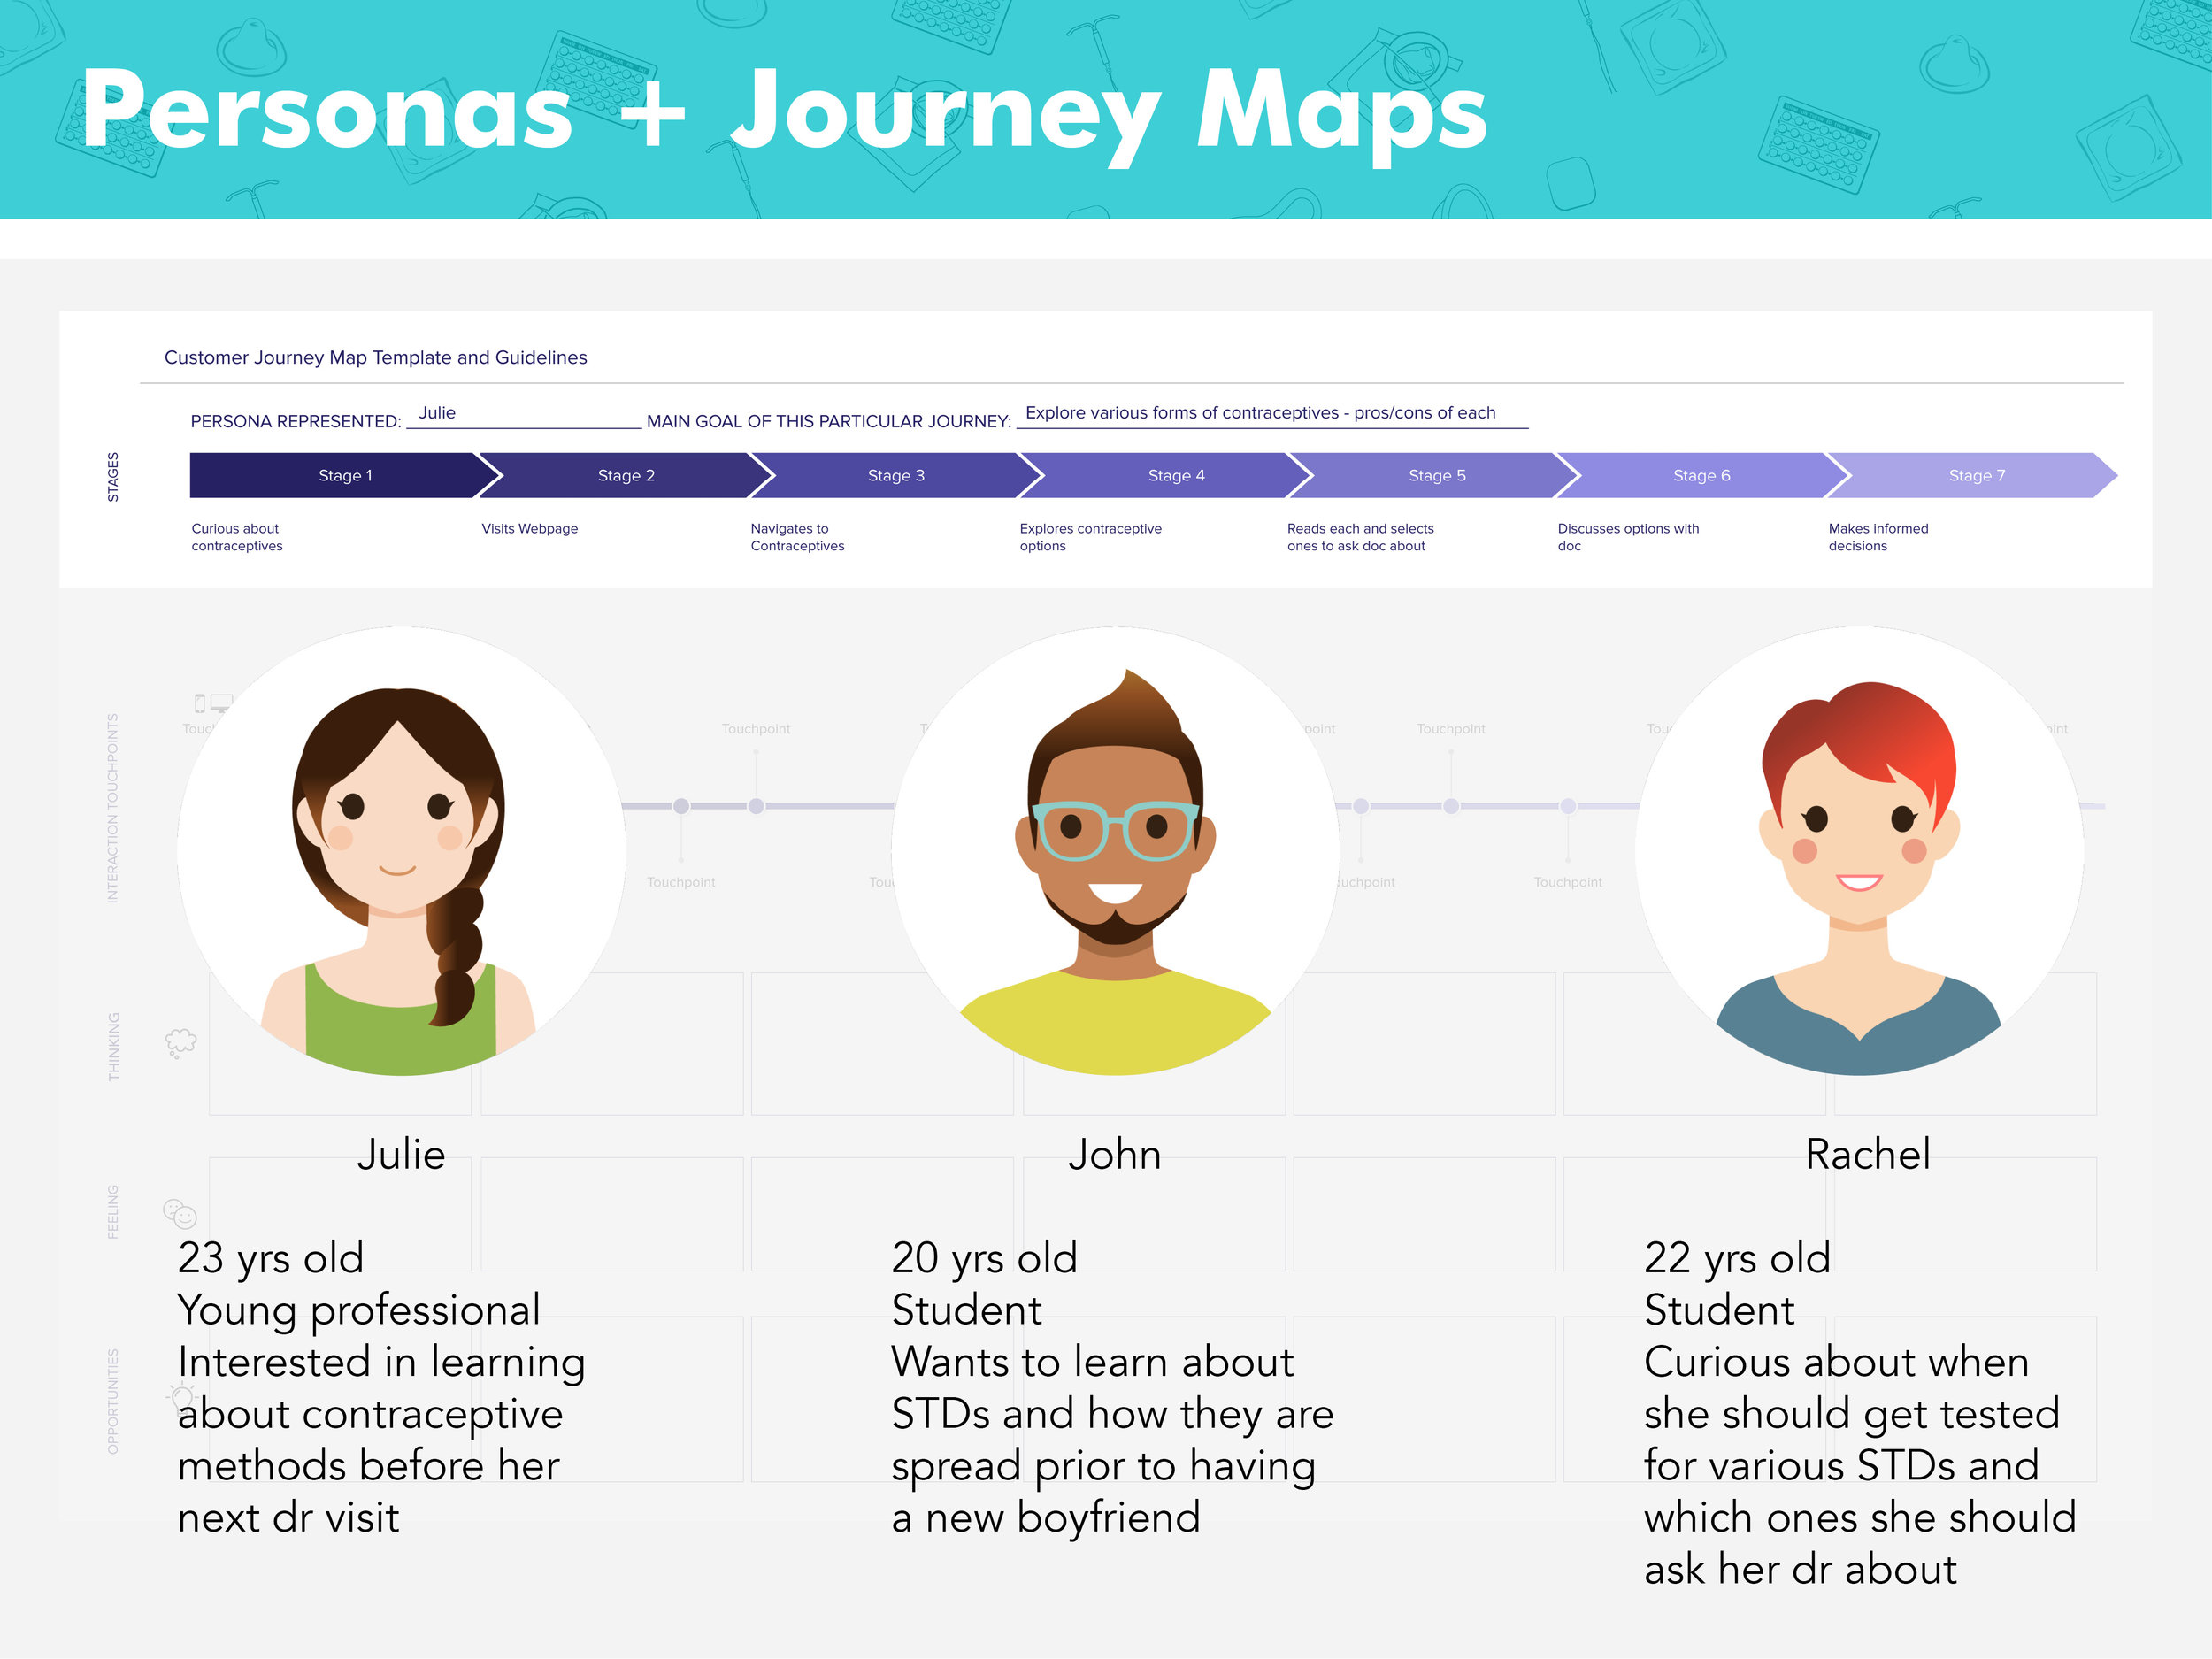 Personas and Journey Maps